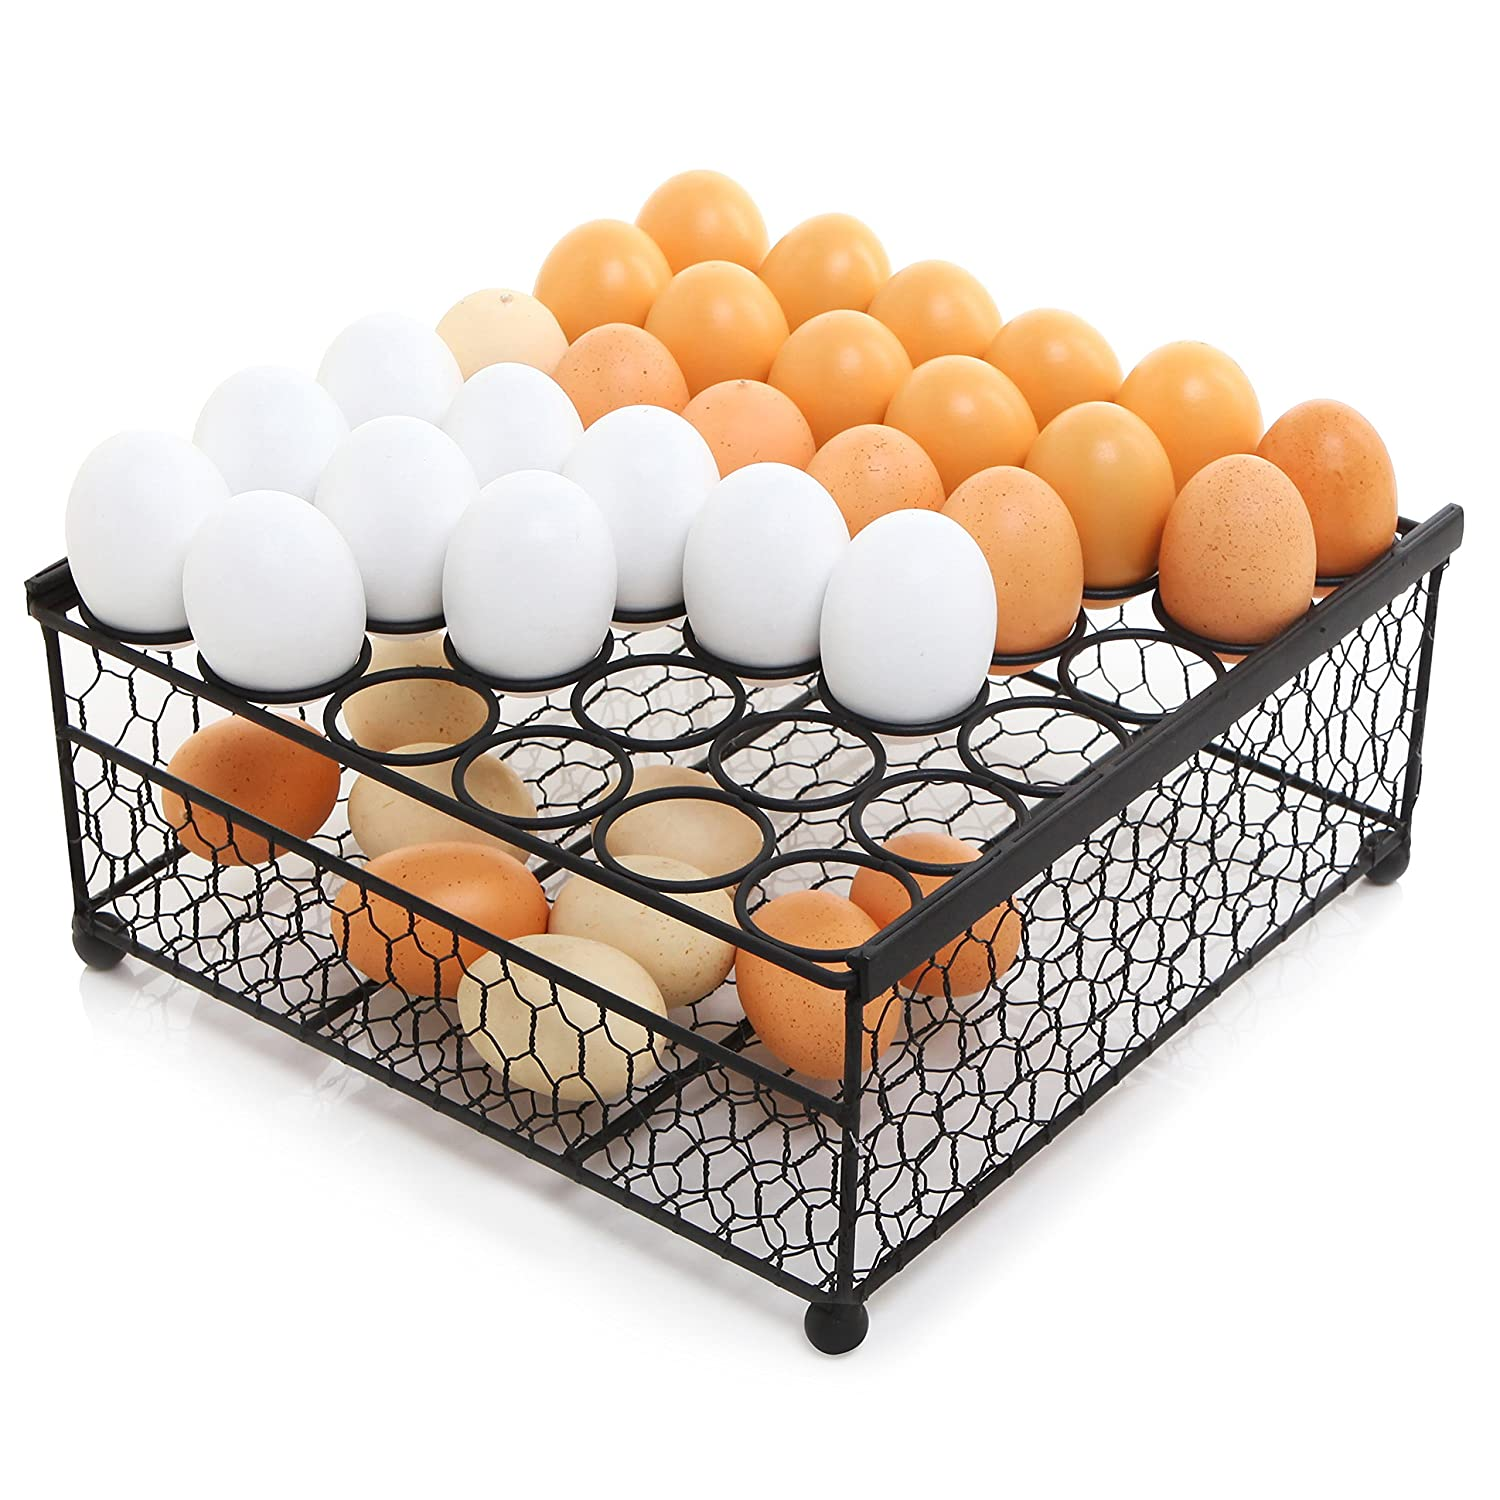 2 Tier Country Rustic Black Chicken Wire 36 Eggs Display Tray and Storage Basket MyGift